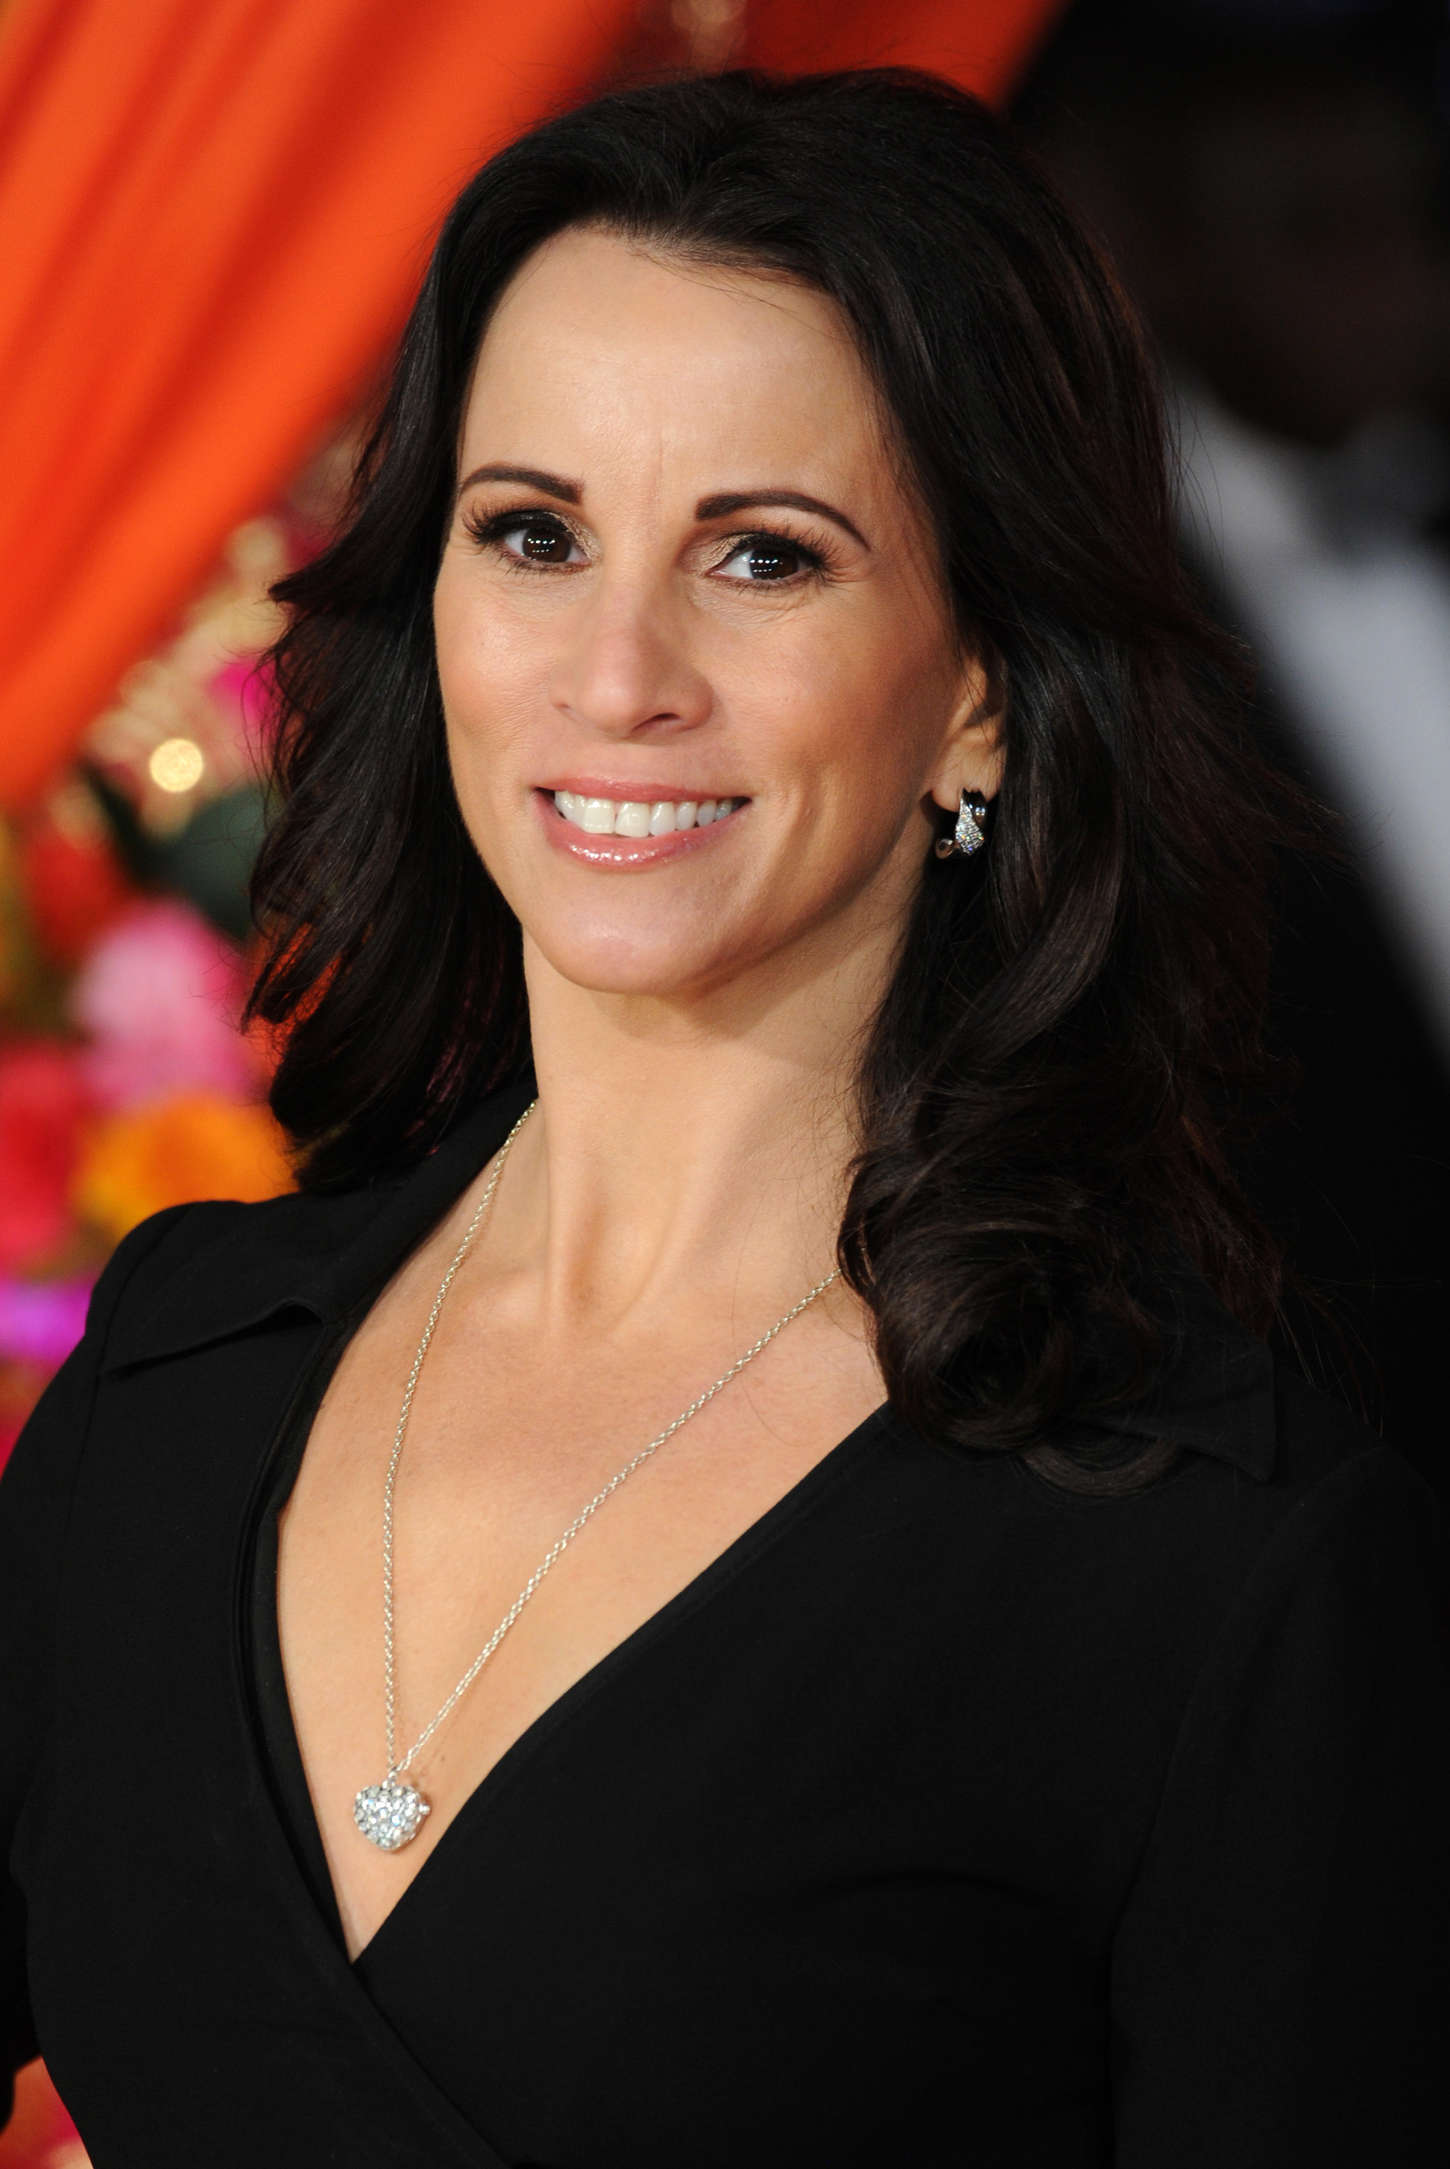 Andrea McLean Royal Performance Premiere of The Second Best Exotic Marigold Hotel in London